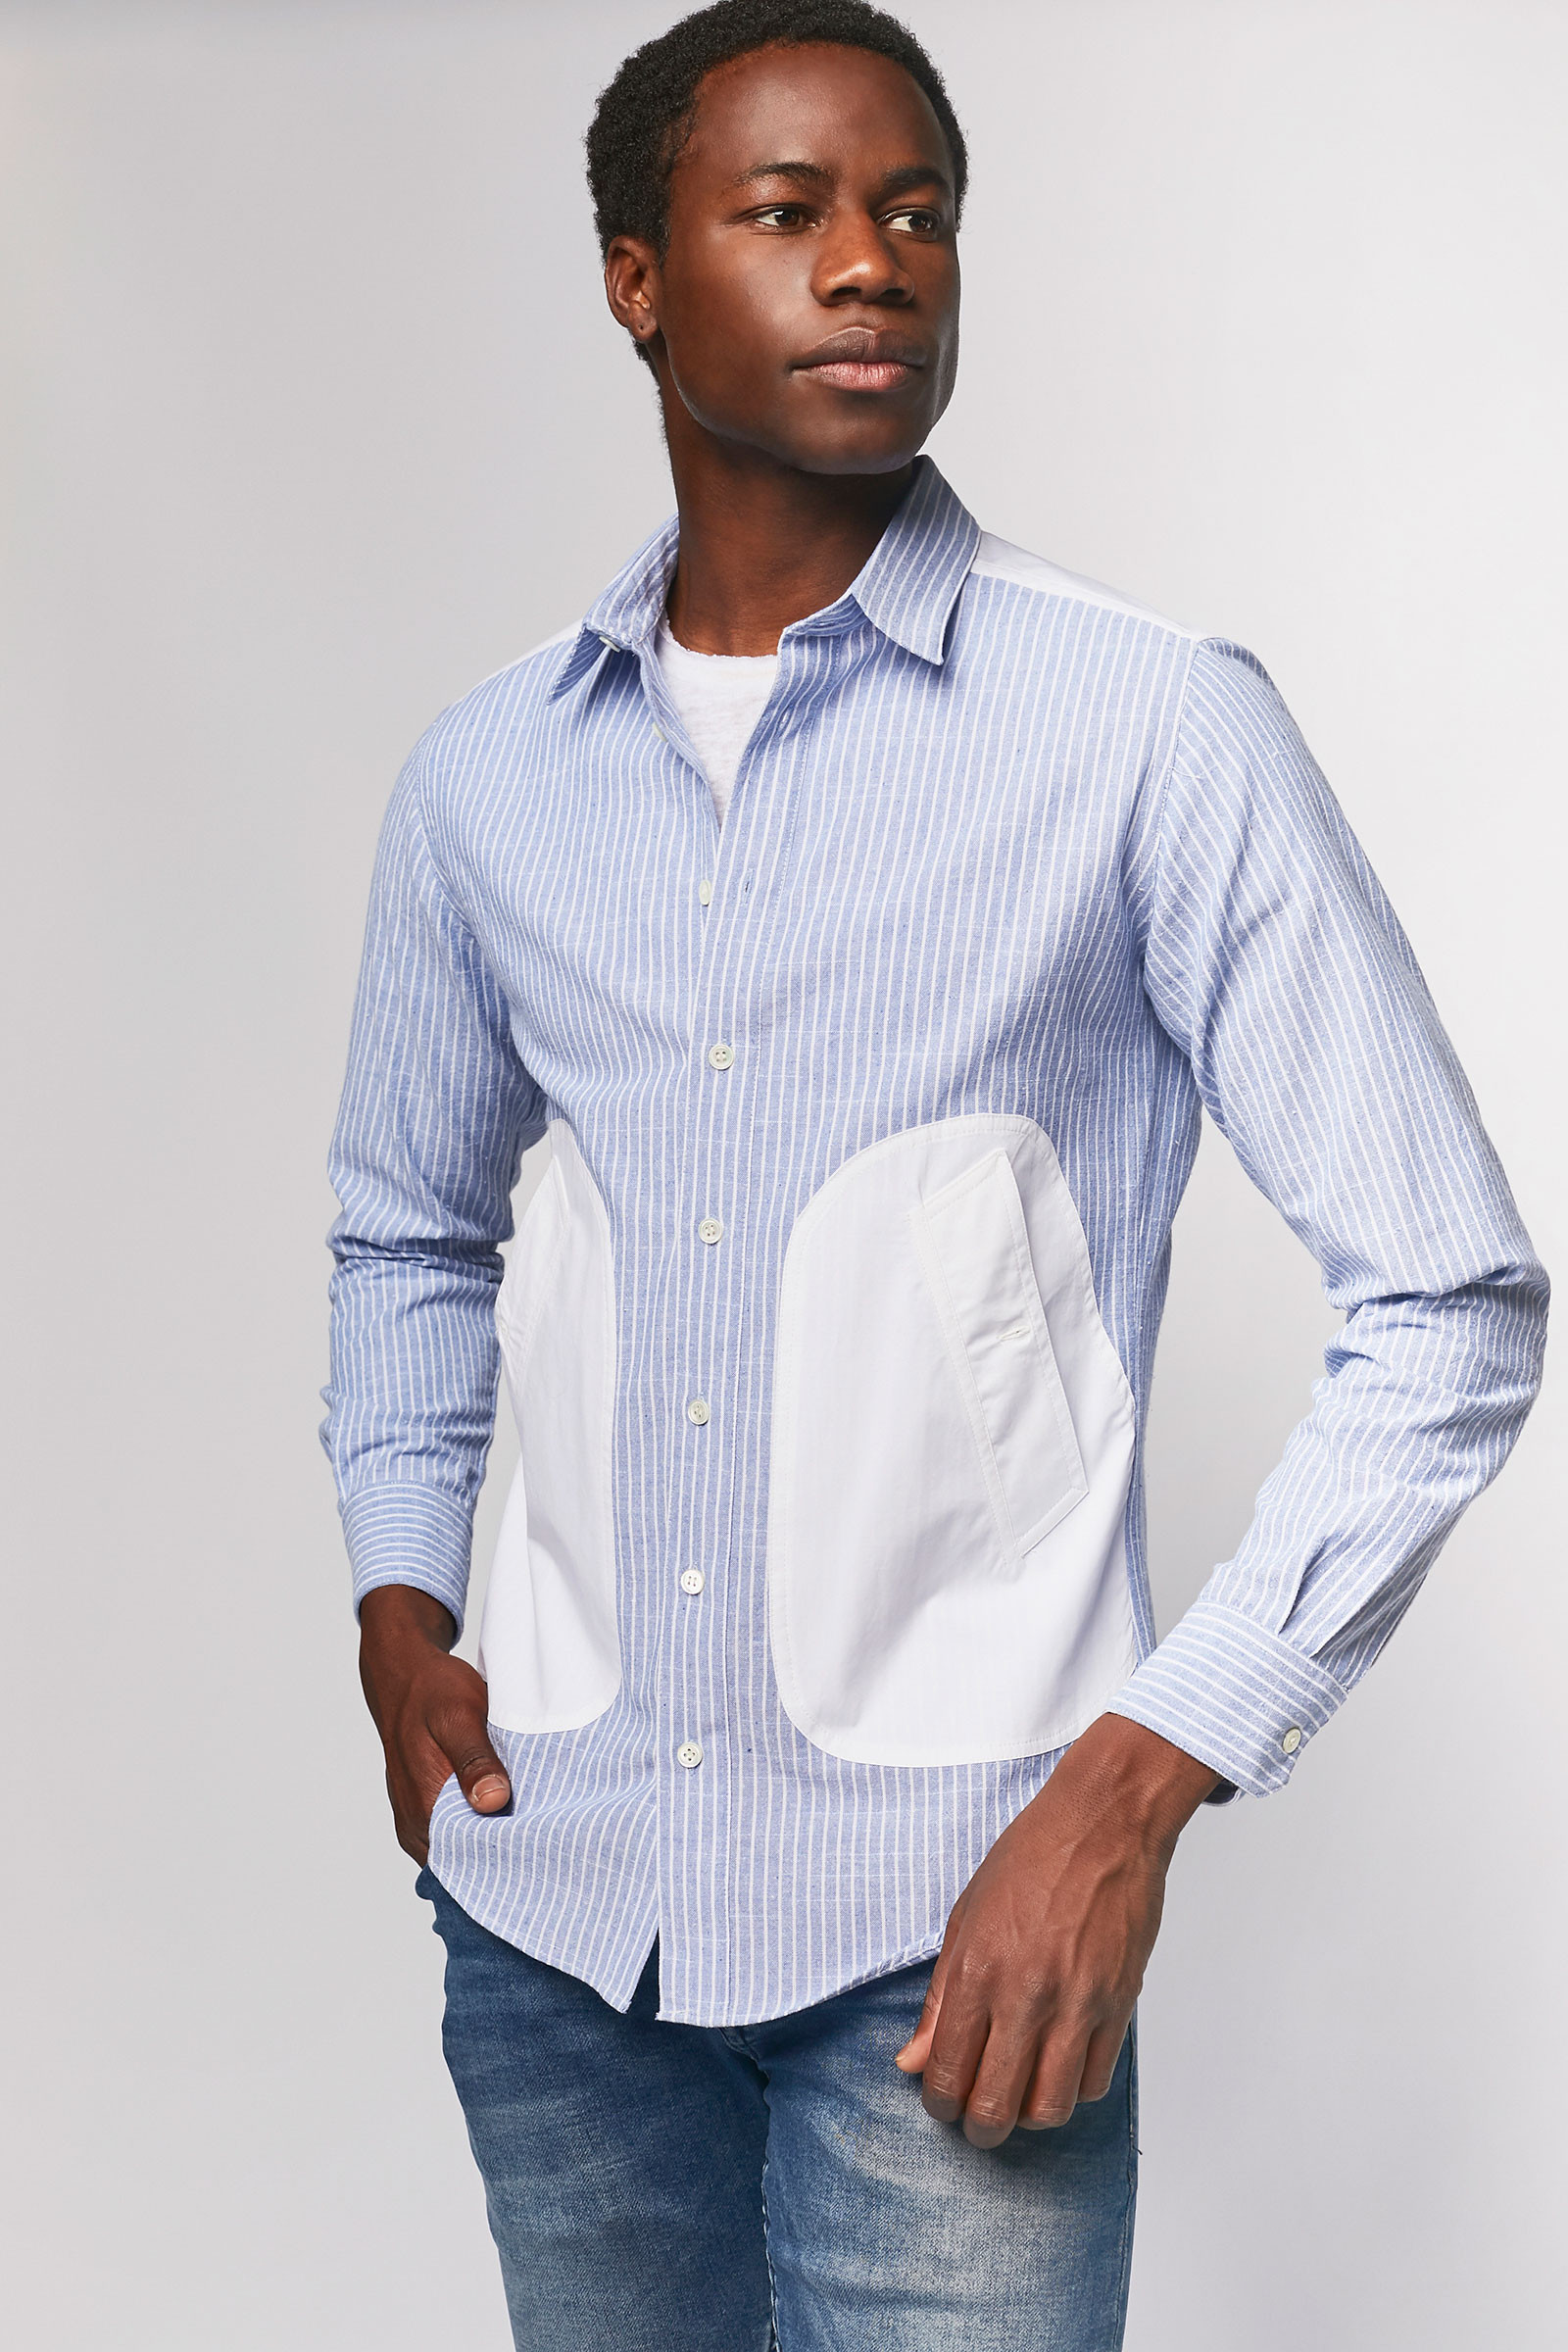 Torn blue shirt with side pockets Pockets cover